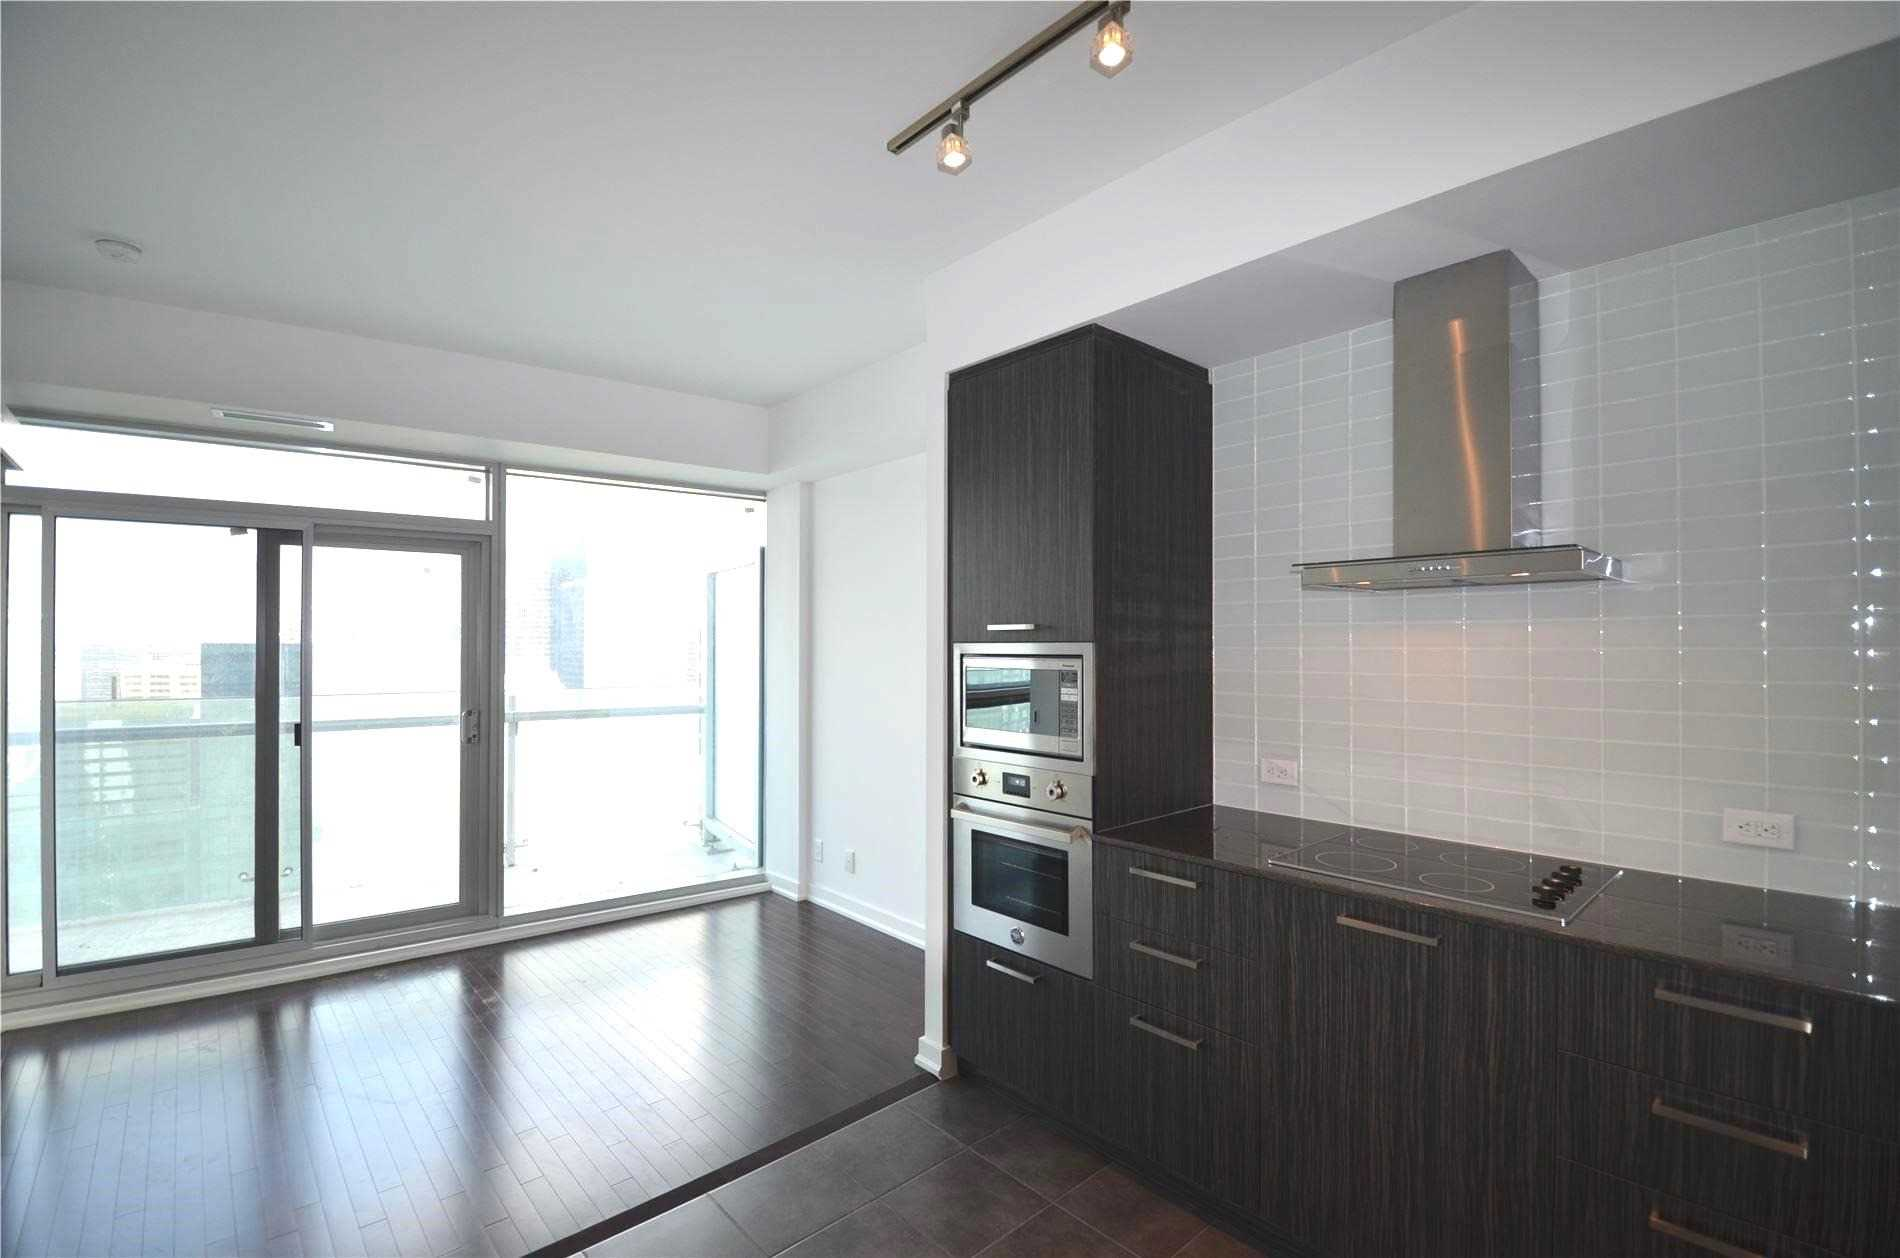 For Rent: 3909 - 14 York Street, Toronto, ON | 1 Bed, 1 Bath Condo for $2400.00. See 9 photos!